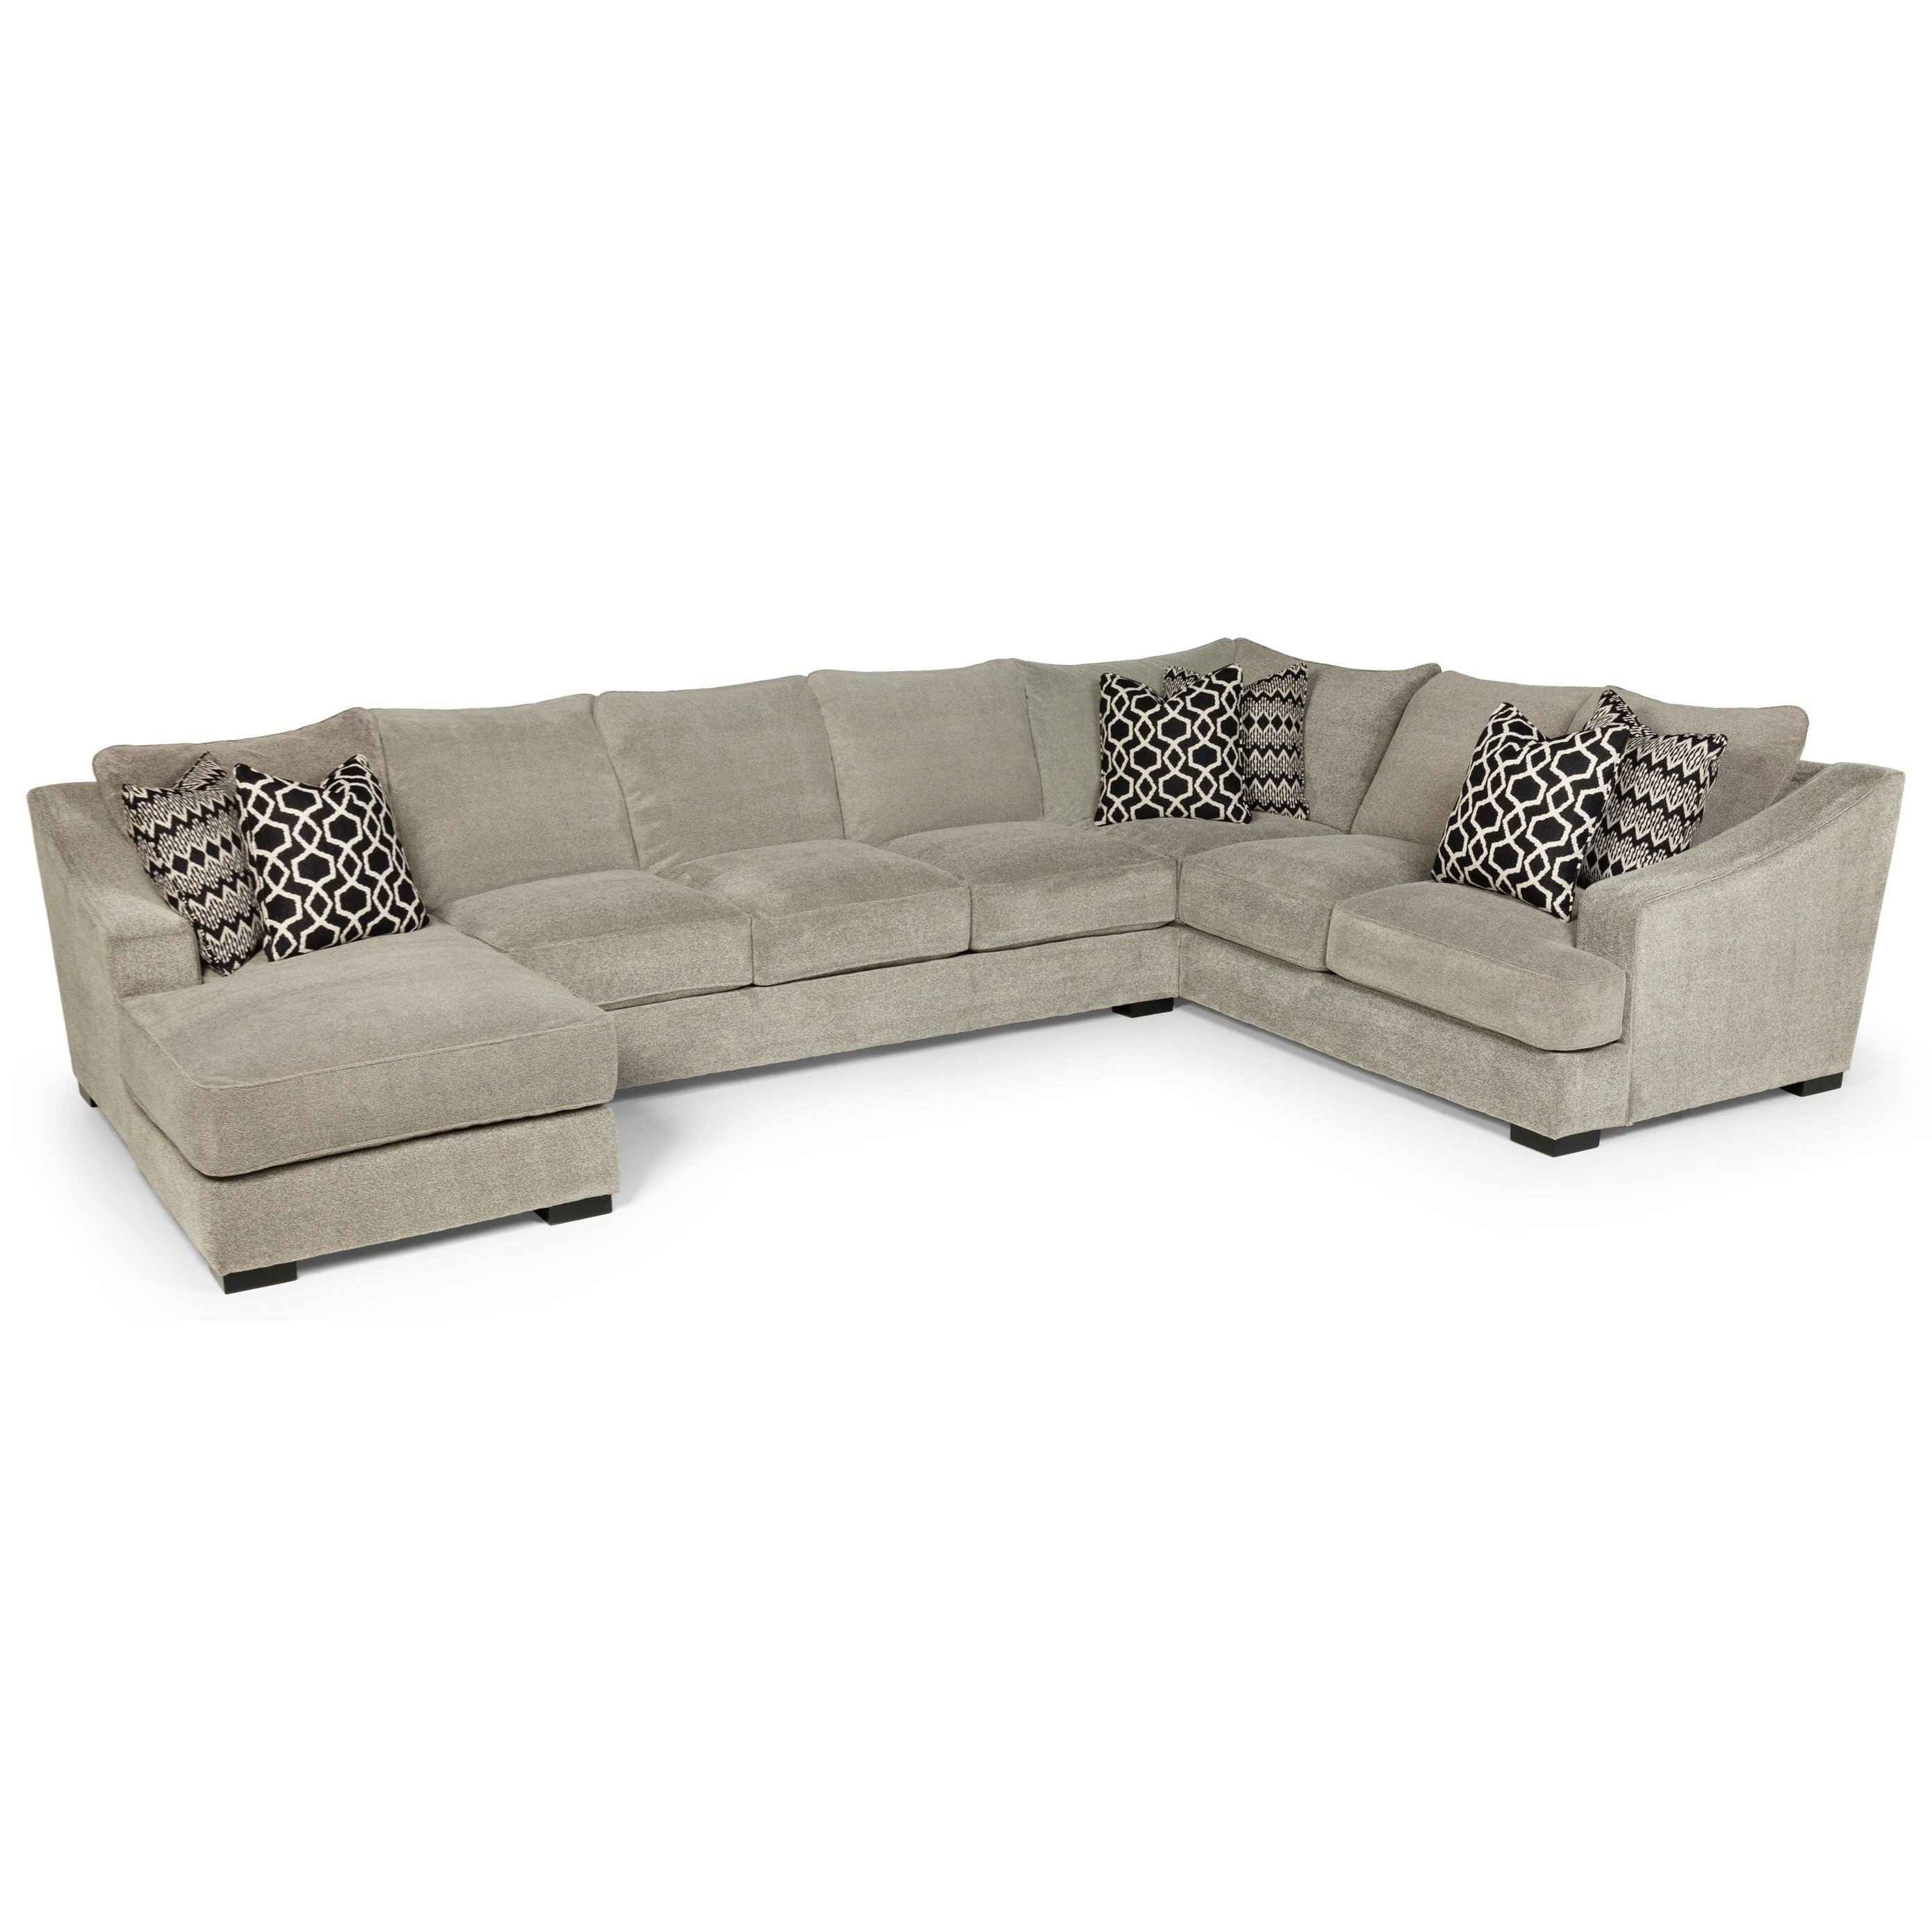 Eugene Oregon Sectional Sofas Intended For 2018 Stanton 338 Casual Three Piece Sectional Sofa With Deep Seats (View 10 of 15)